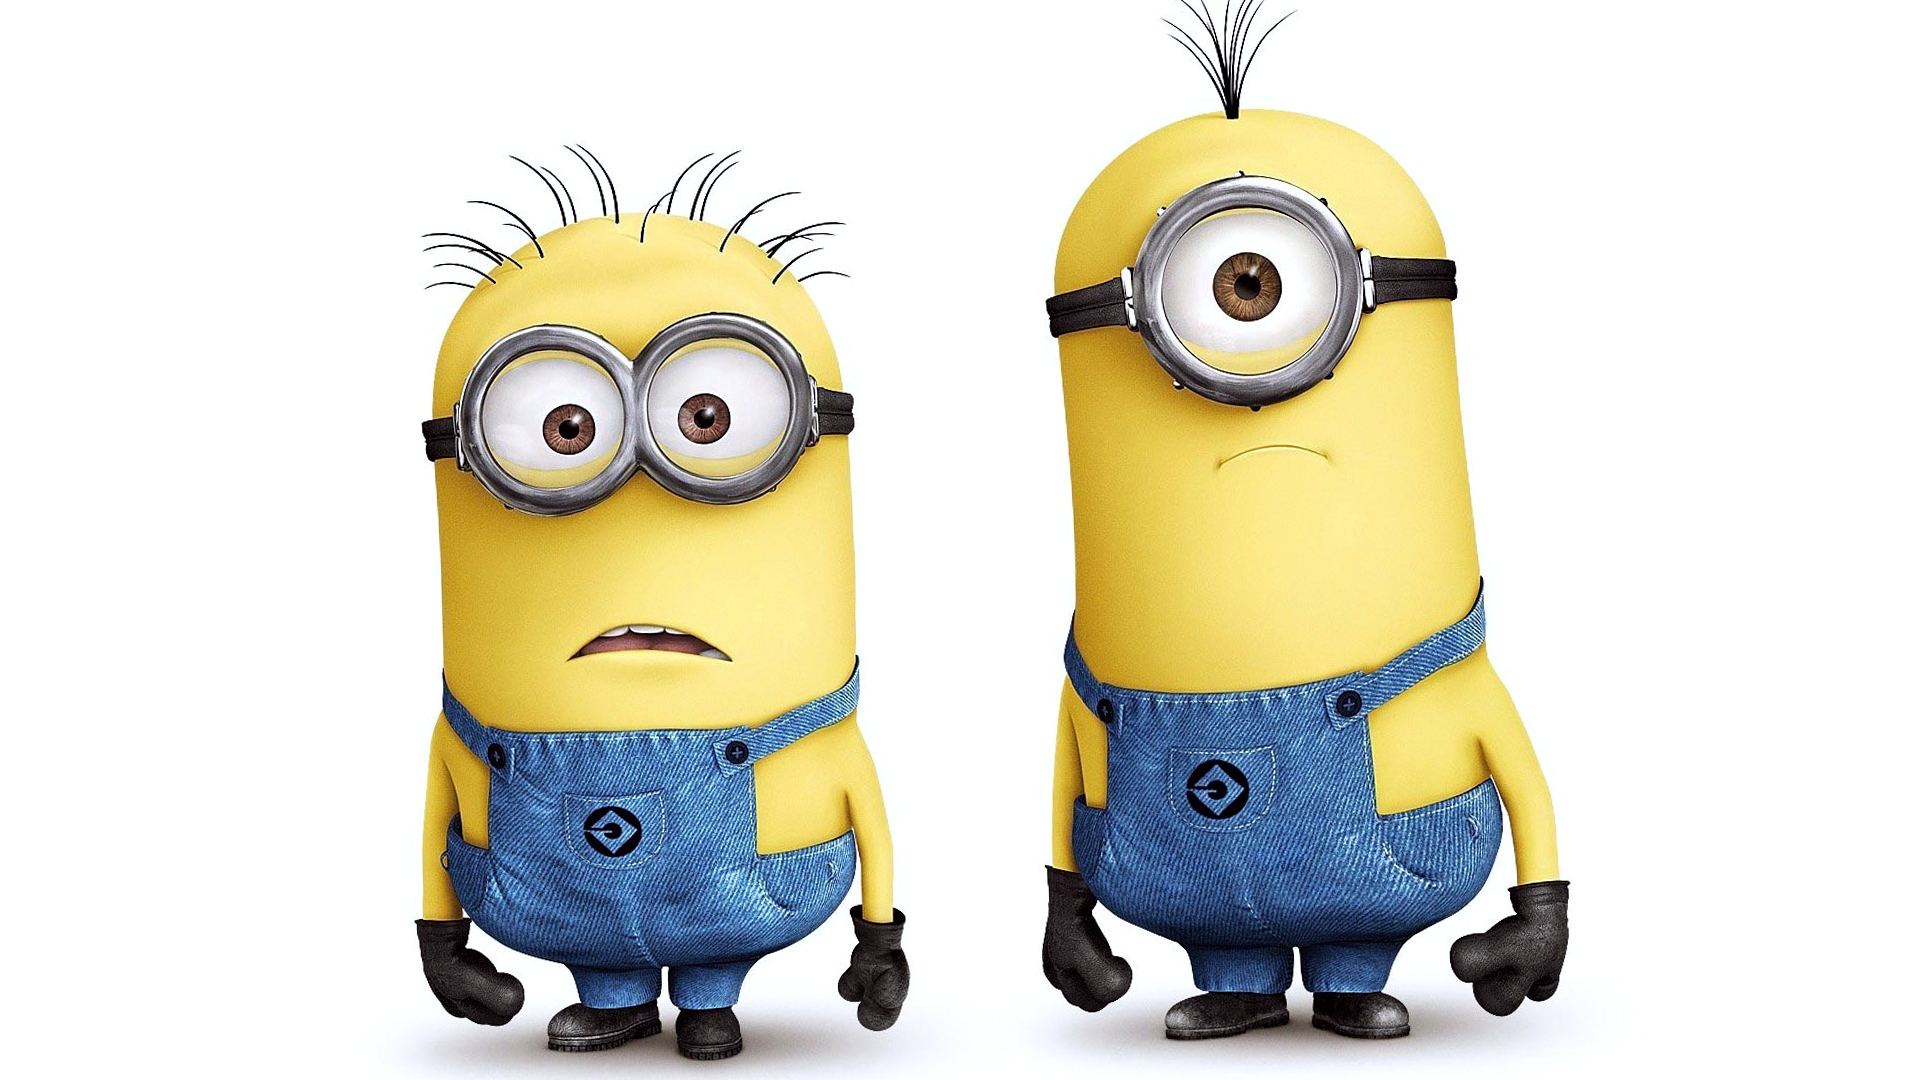 Funny Minion Cartoon Wallpapers HD 1920x1080